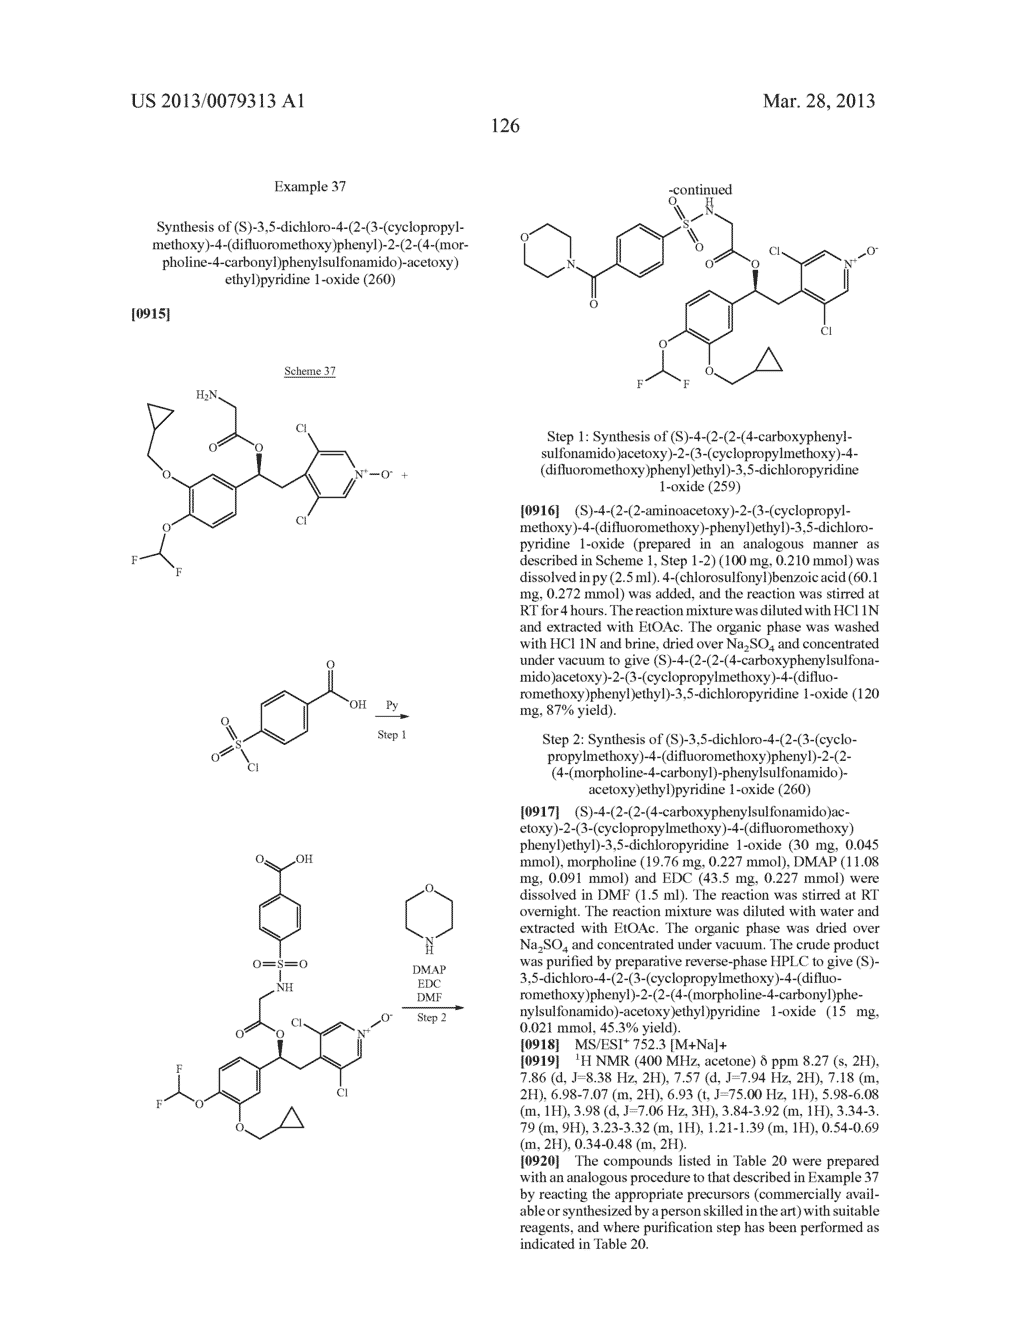 DERIVATIVES OF 1-PHENYL-2-PYRIDINYL ALKYL ALCOHOLS AS PHOSPHODIESTERASE     INHIBITORS - diagram, schematic, and image 127